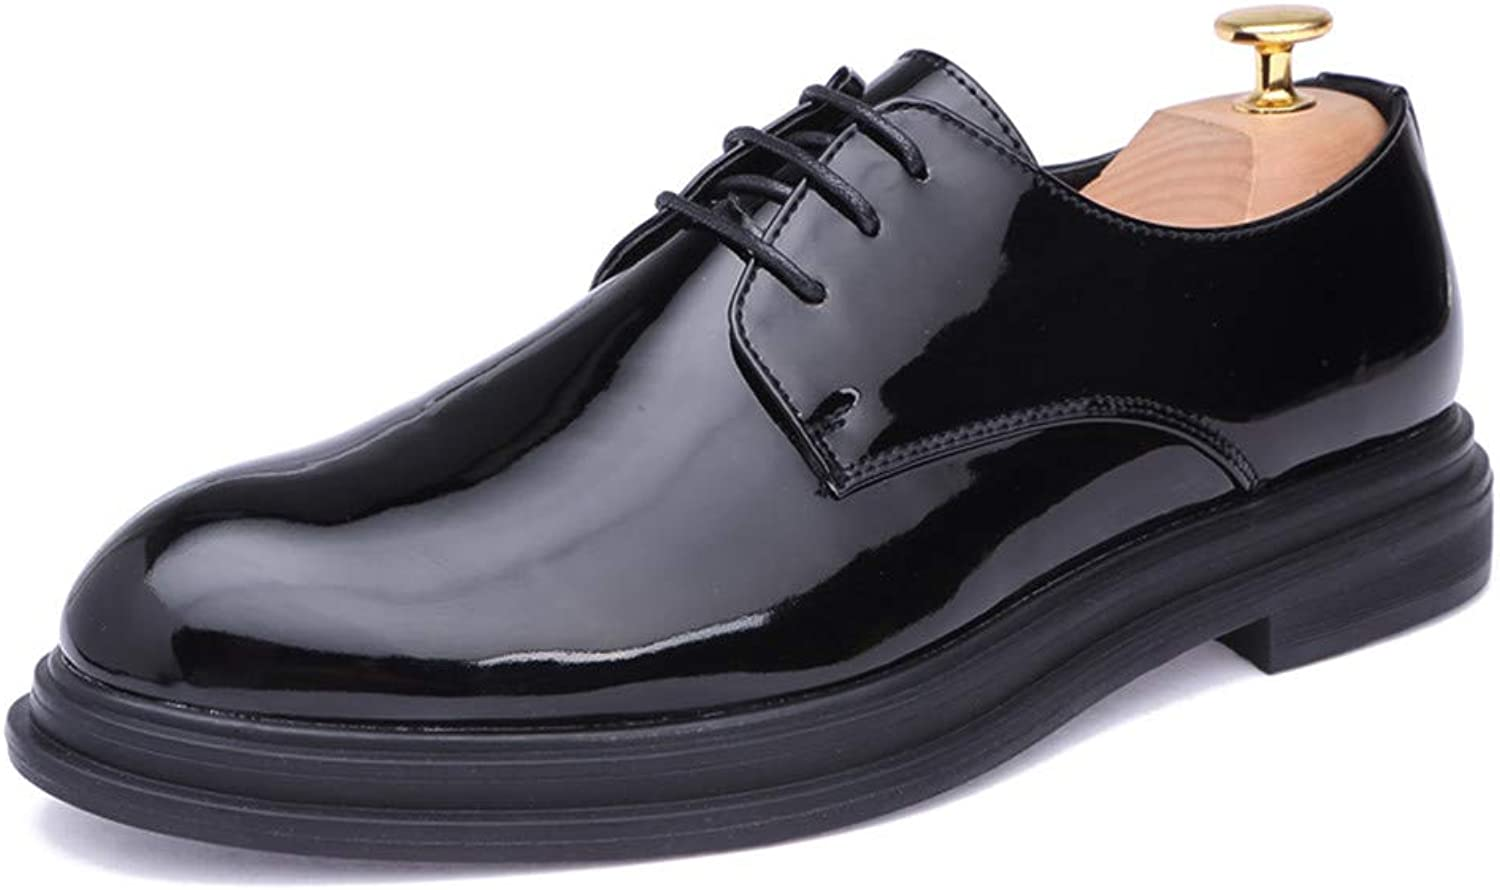 JIALUN-shoes Men's Simple Business Oxford Casual New Light and Comfortable Outsole Patent Leather Formal shoes